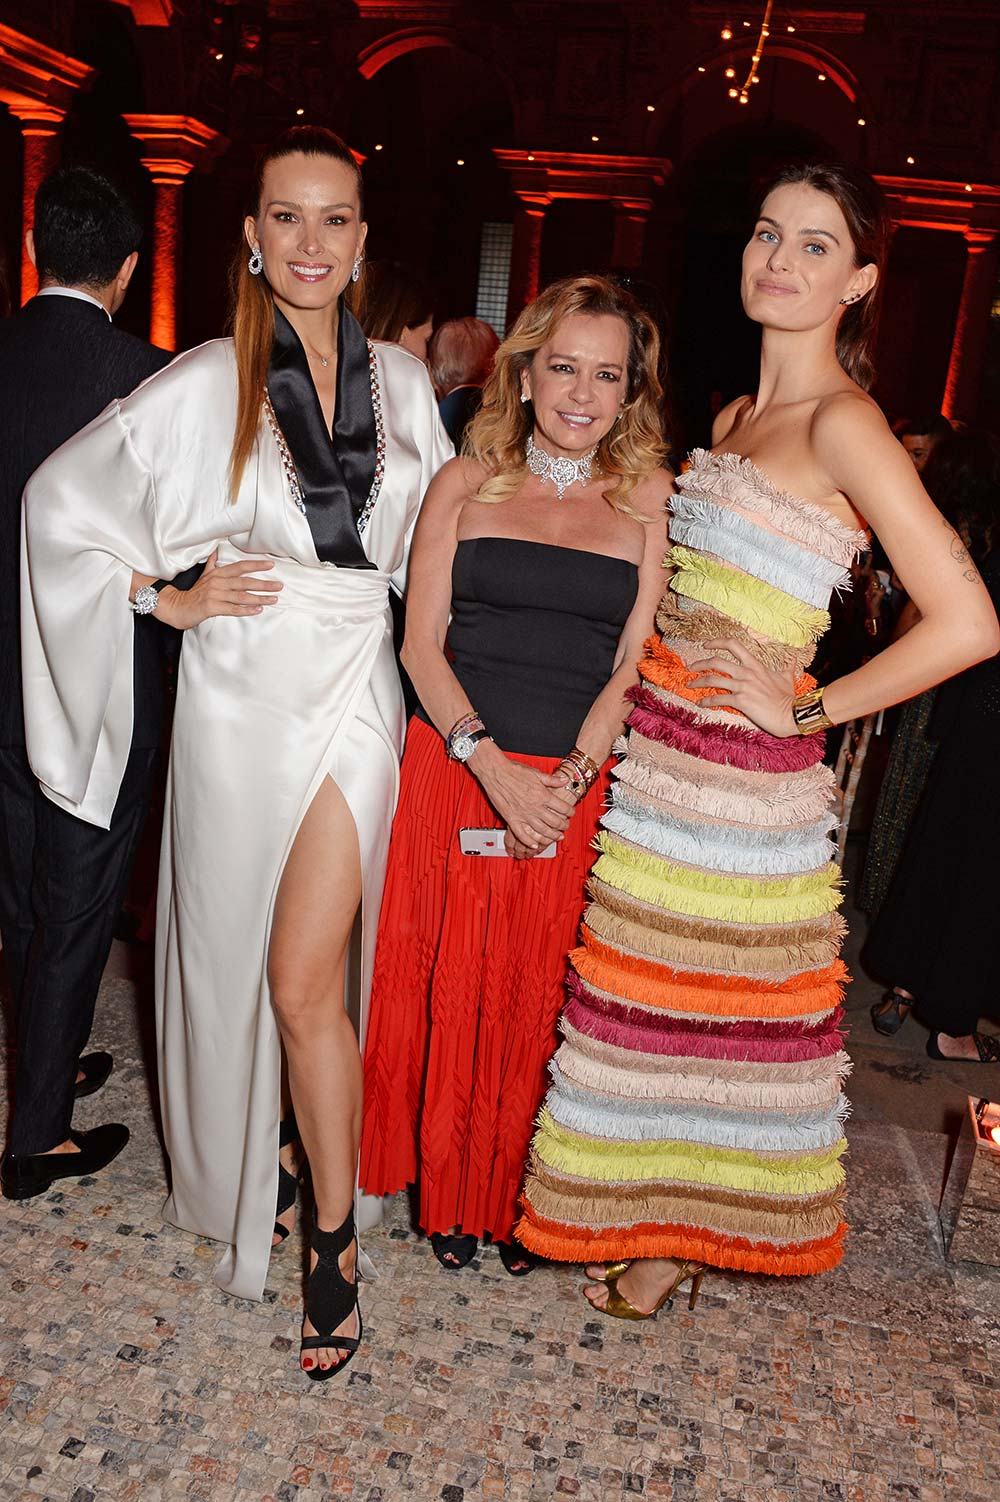 Green Carpet Fashion Awards 2018 - Petra Nemcova and Caroline Scheufele - Hair & Makeup Massimo Serini